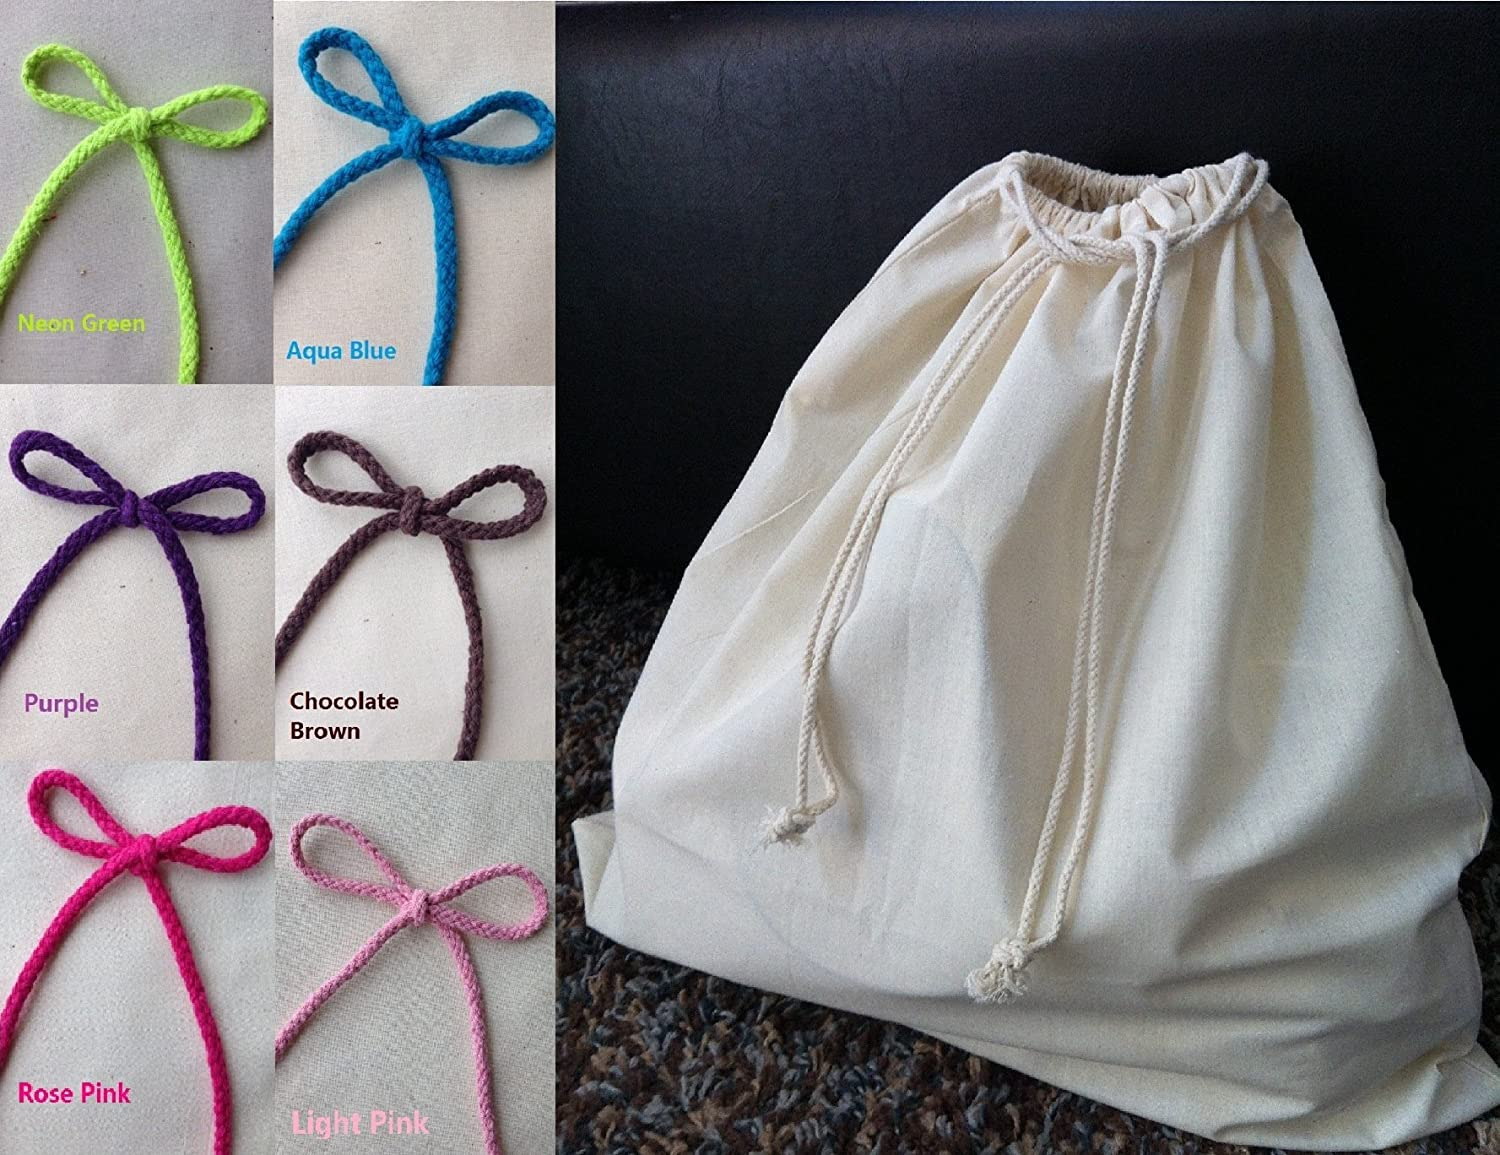 c9a6d066c2a2 Amazon.com  Durable Cotton Canvas Dust Bag for Handbags or Shoes ...